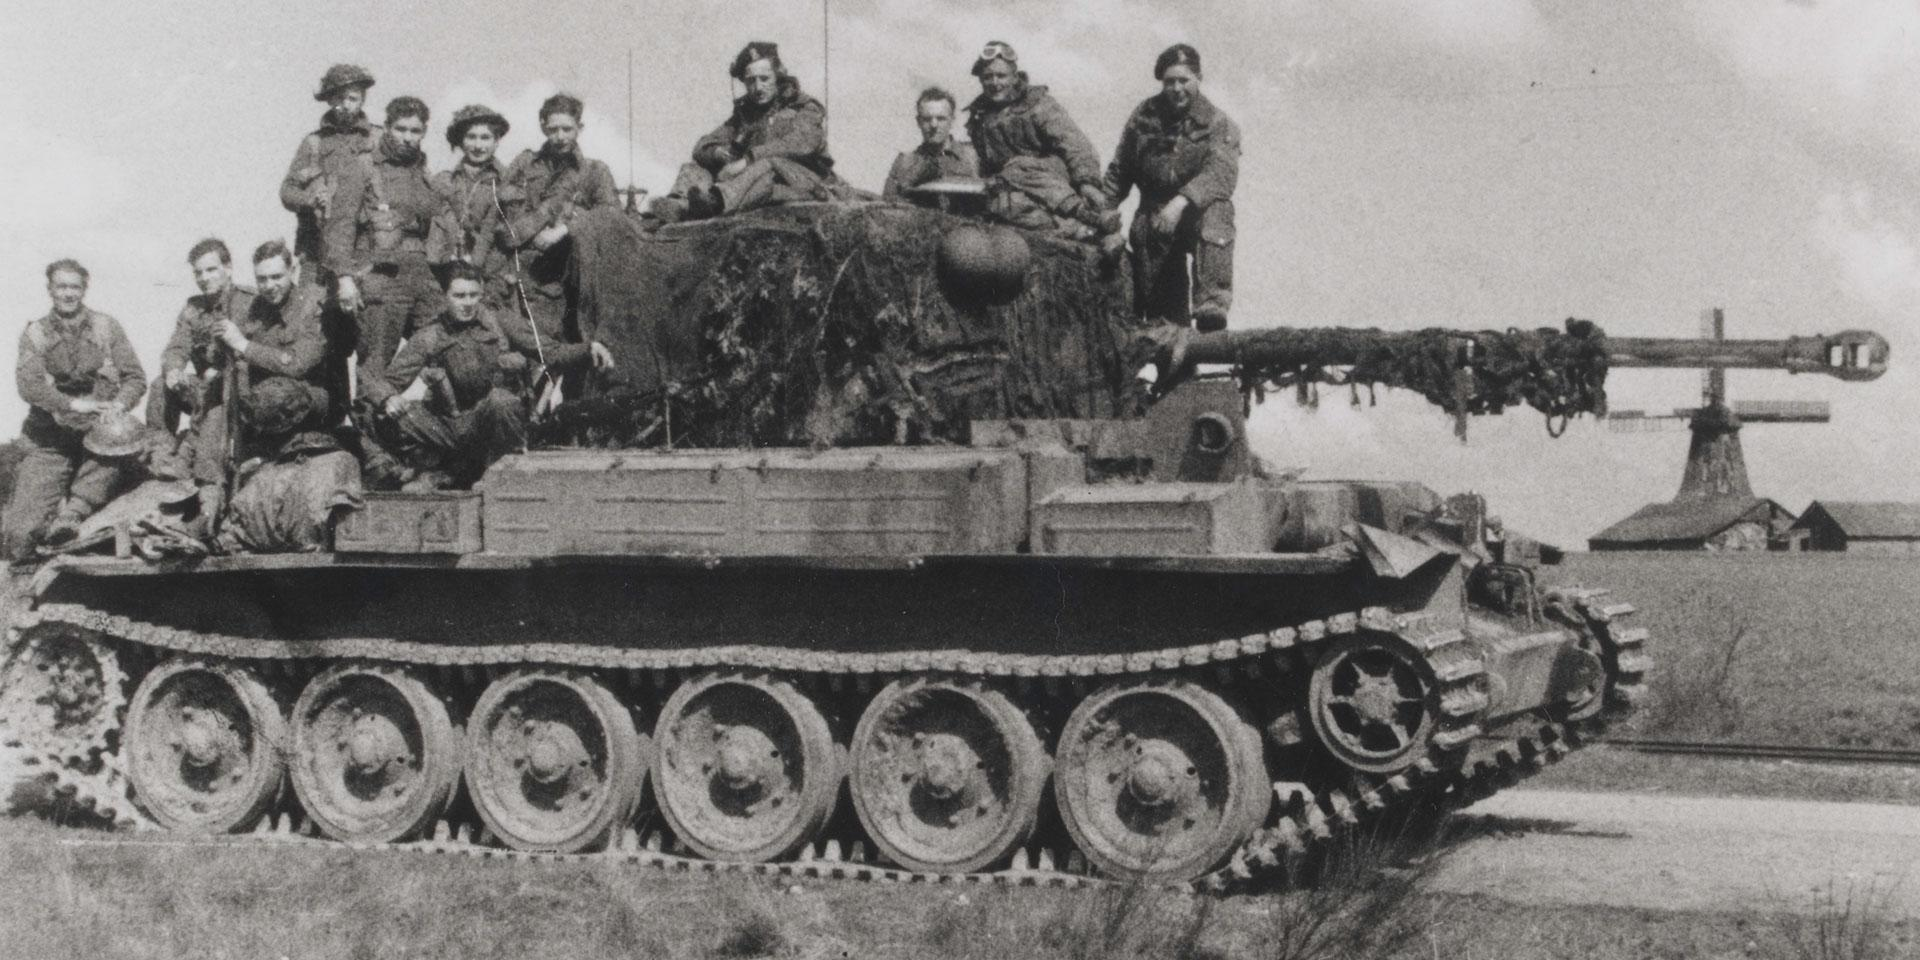 Challenger tank of 15th/19th King's Royal Hussars, 1945